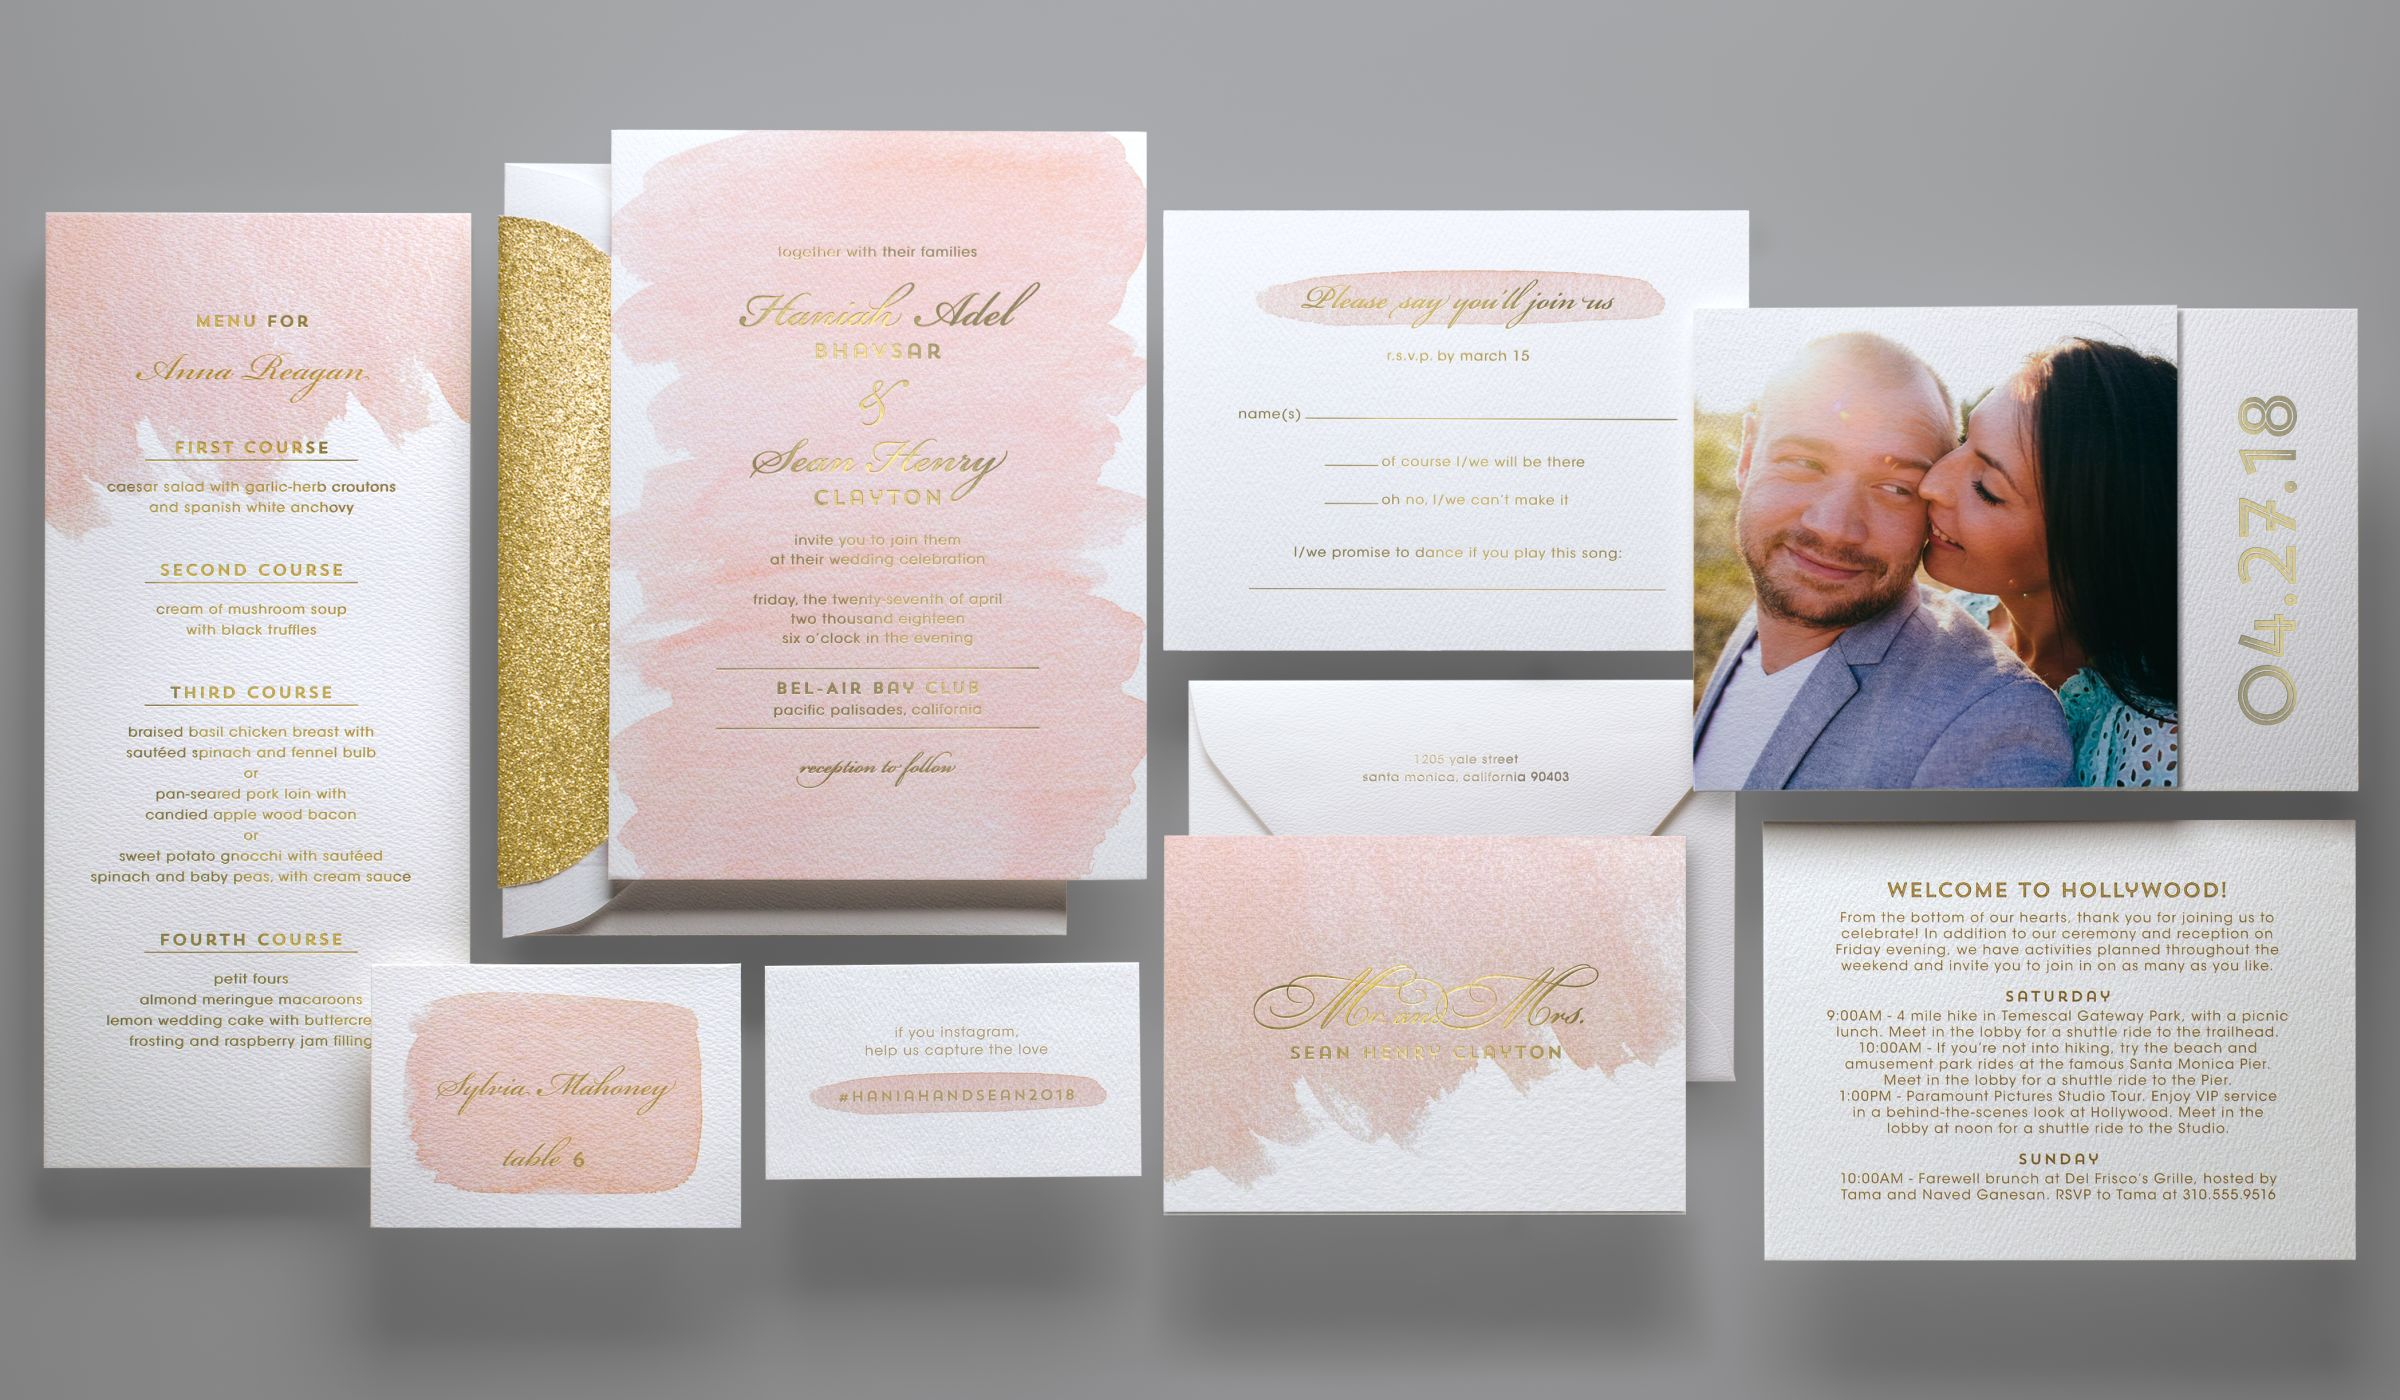 The wedding invitation trends 2018 couples must see weddingwire monicamarmolfo Choice Image